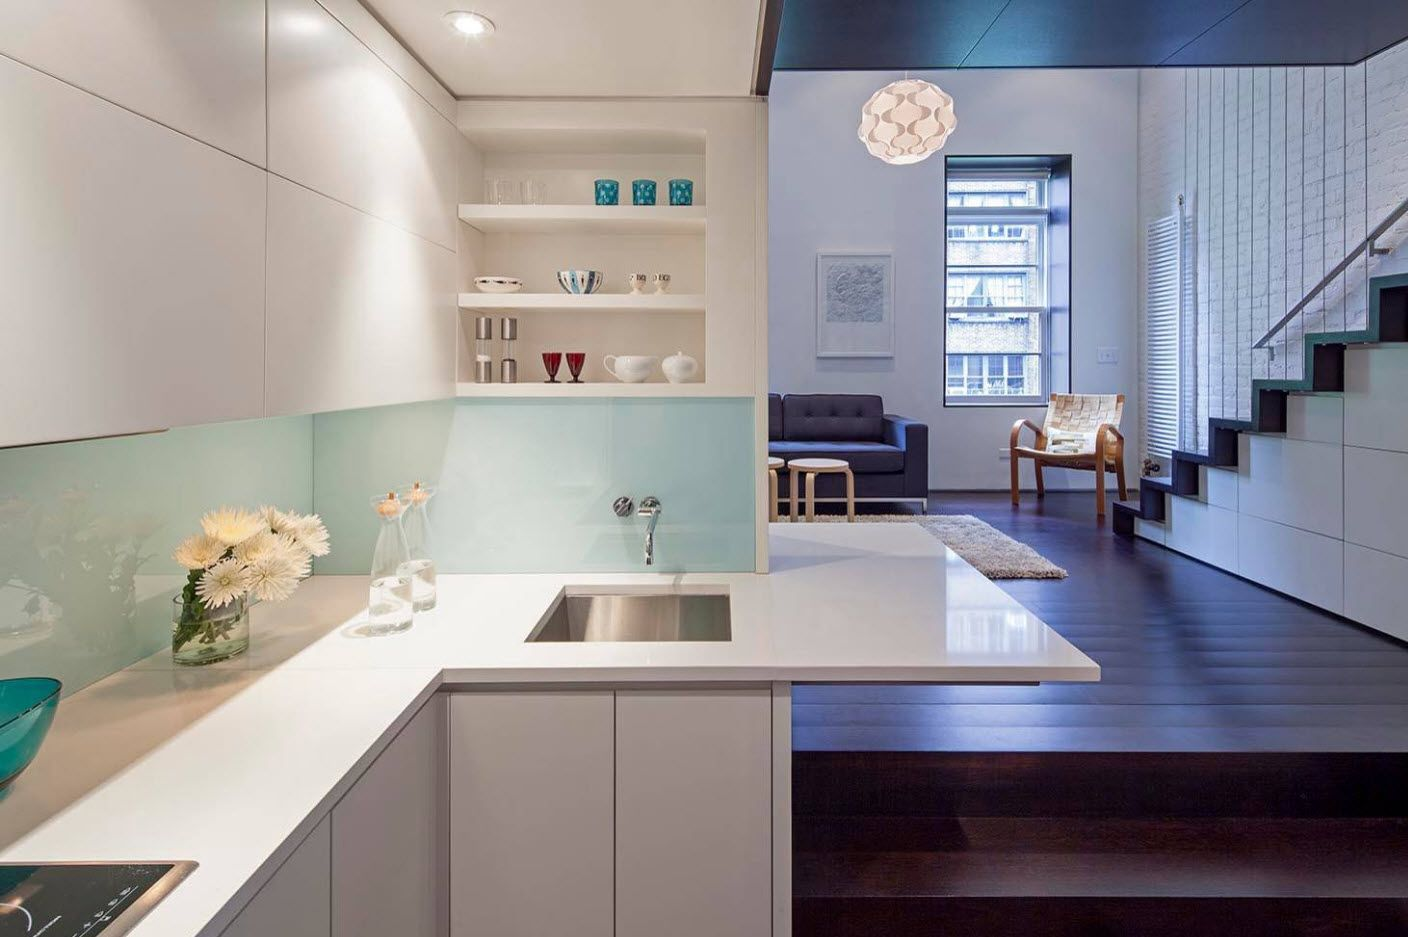 Nice top lighting to the kitchen white plastic glance facades